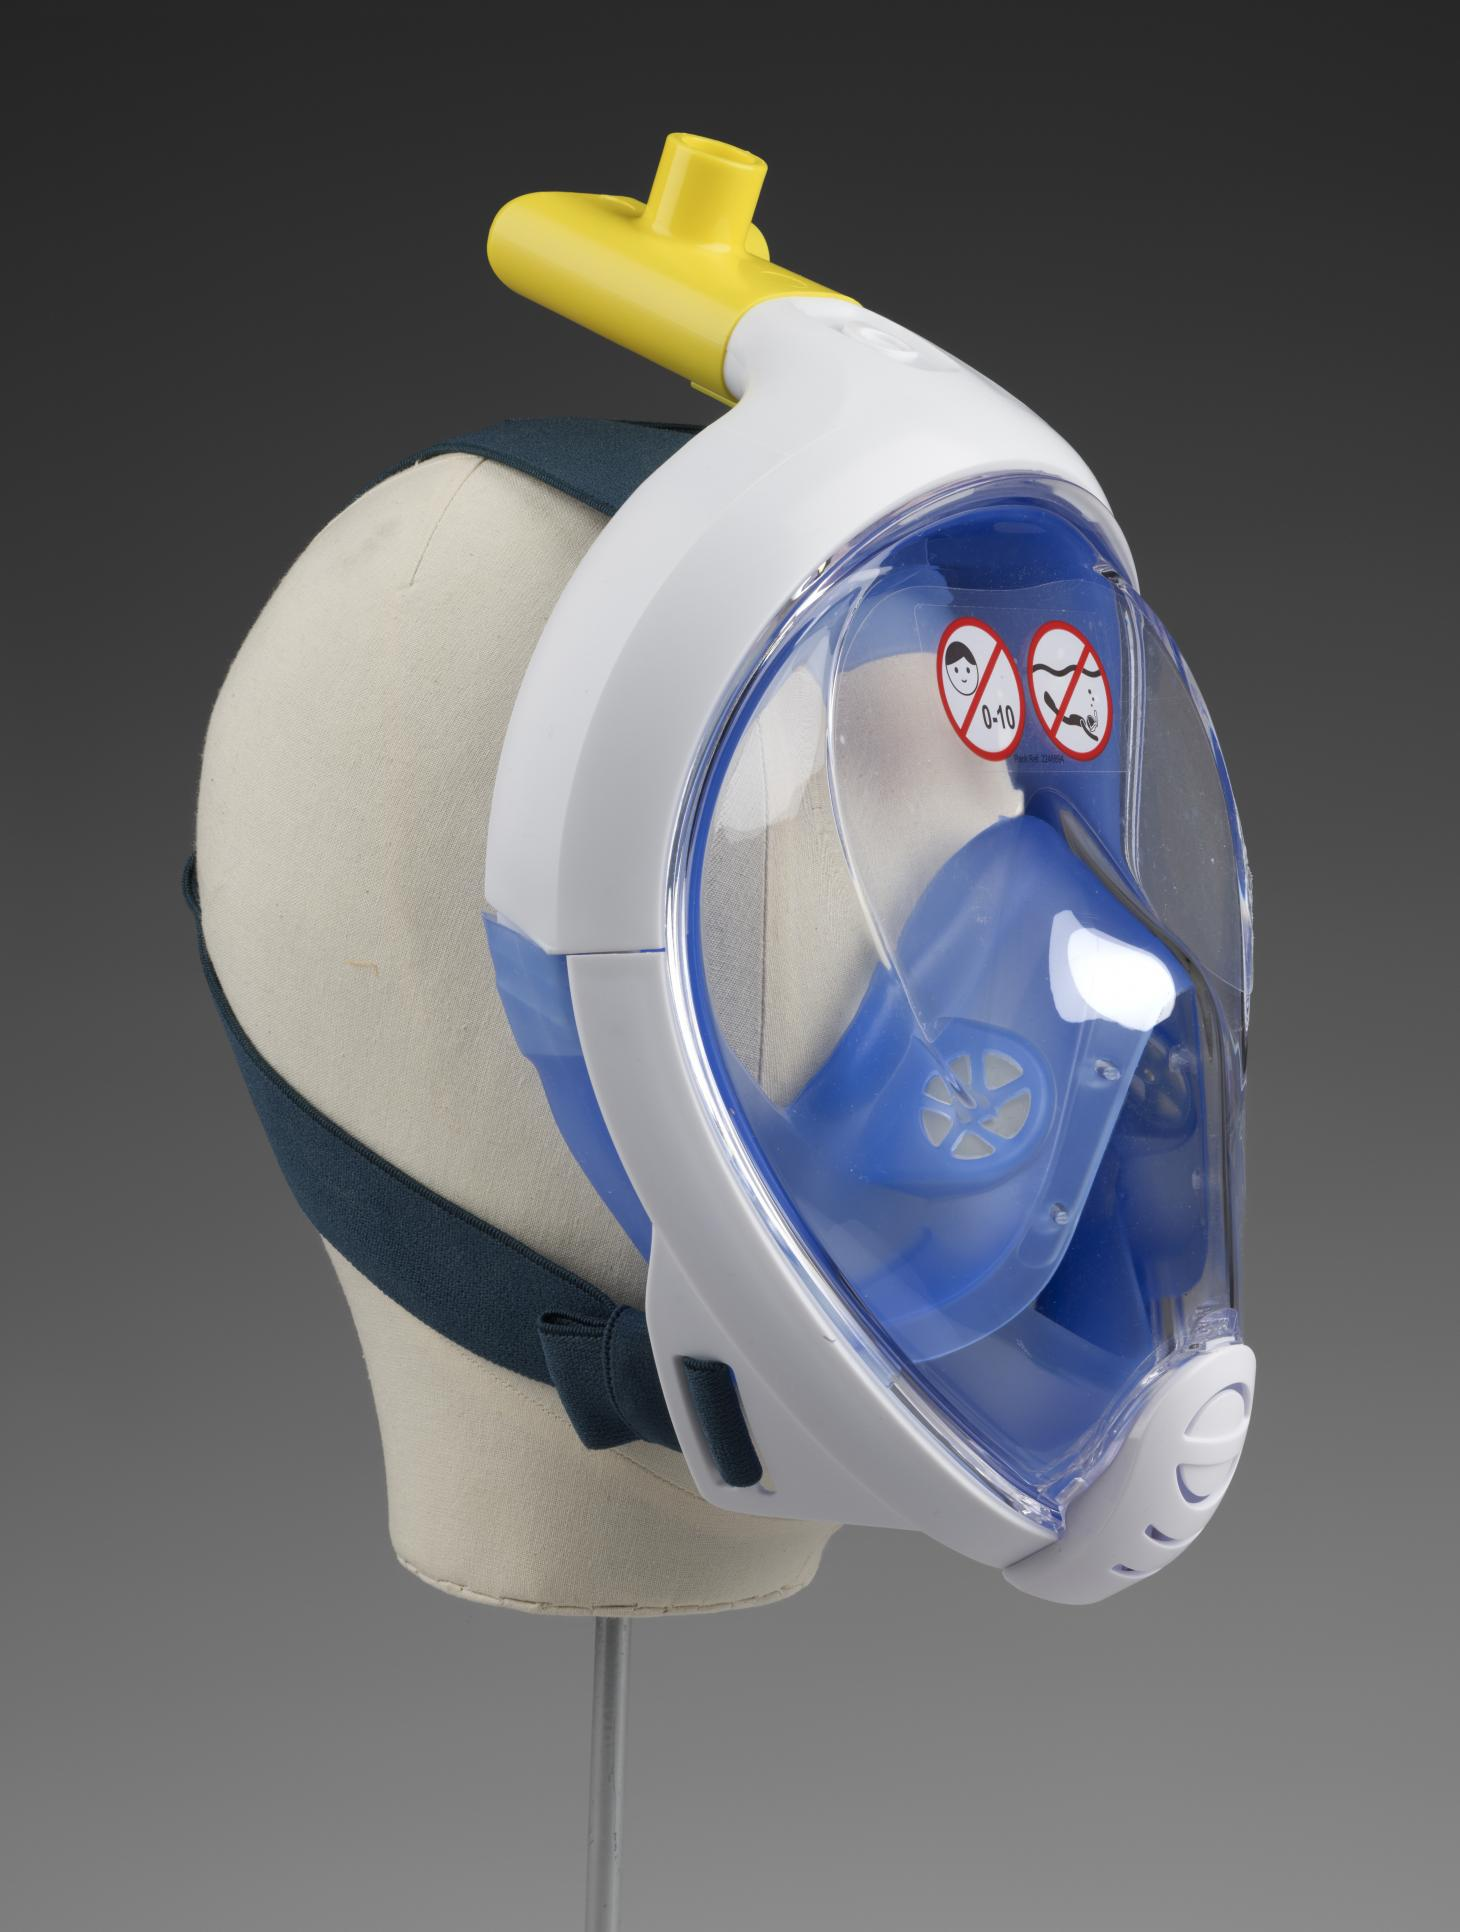 A face mask created for the COVID-19 emergency in 2020, made from a Decathlon diving mask